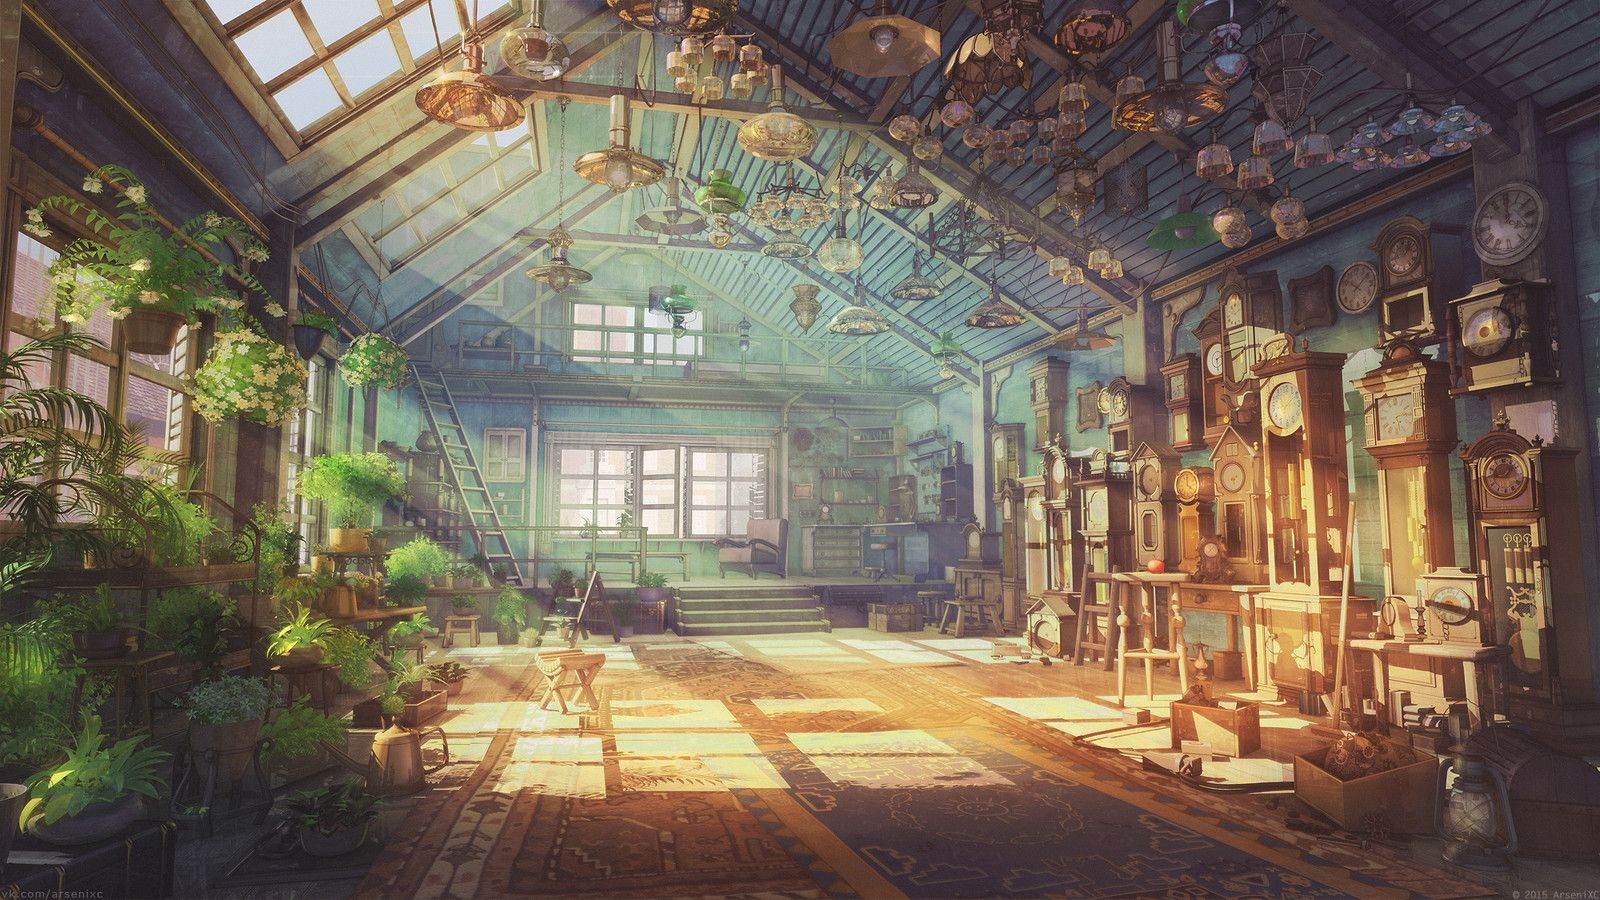 Watchmaker house, Arseniy Chebynkin on ArtStation at https://www.artstation.com/artwork/JwkBv